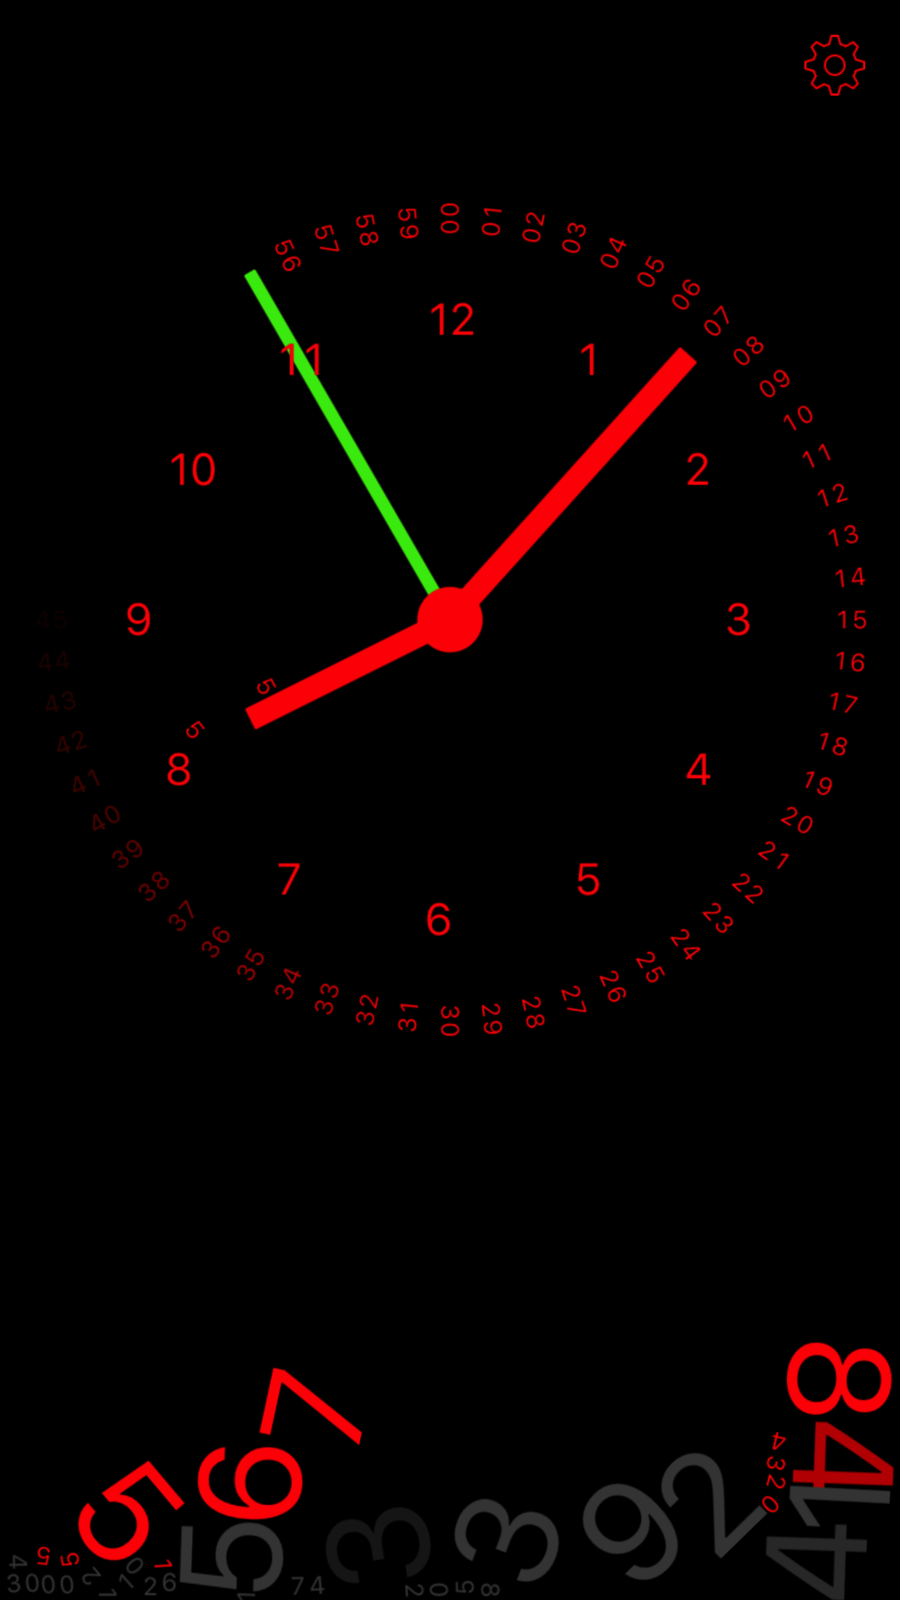 Gravity Clock On The App Store In 2020 Apple Wallpaper Iphone Colourful Wallpaper Iphone Clock Wallpaper